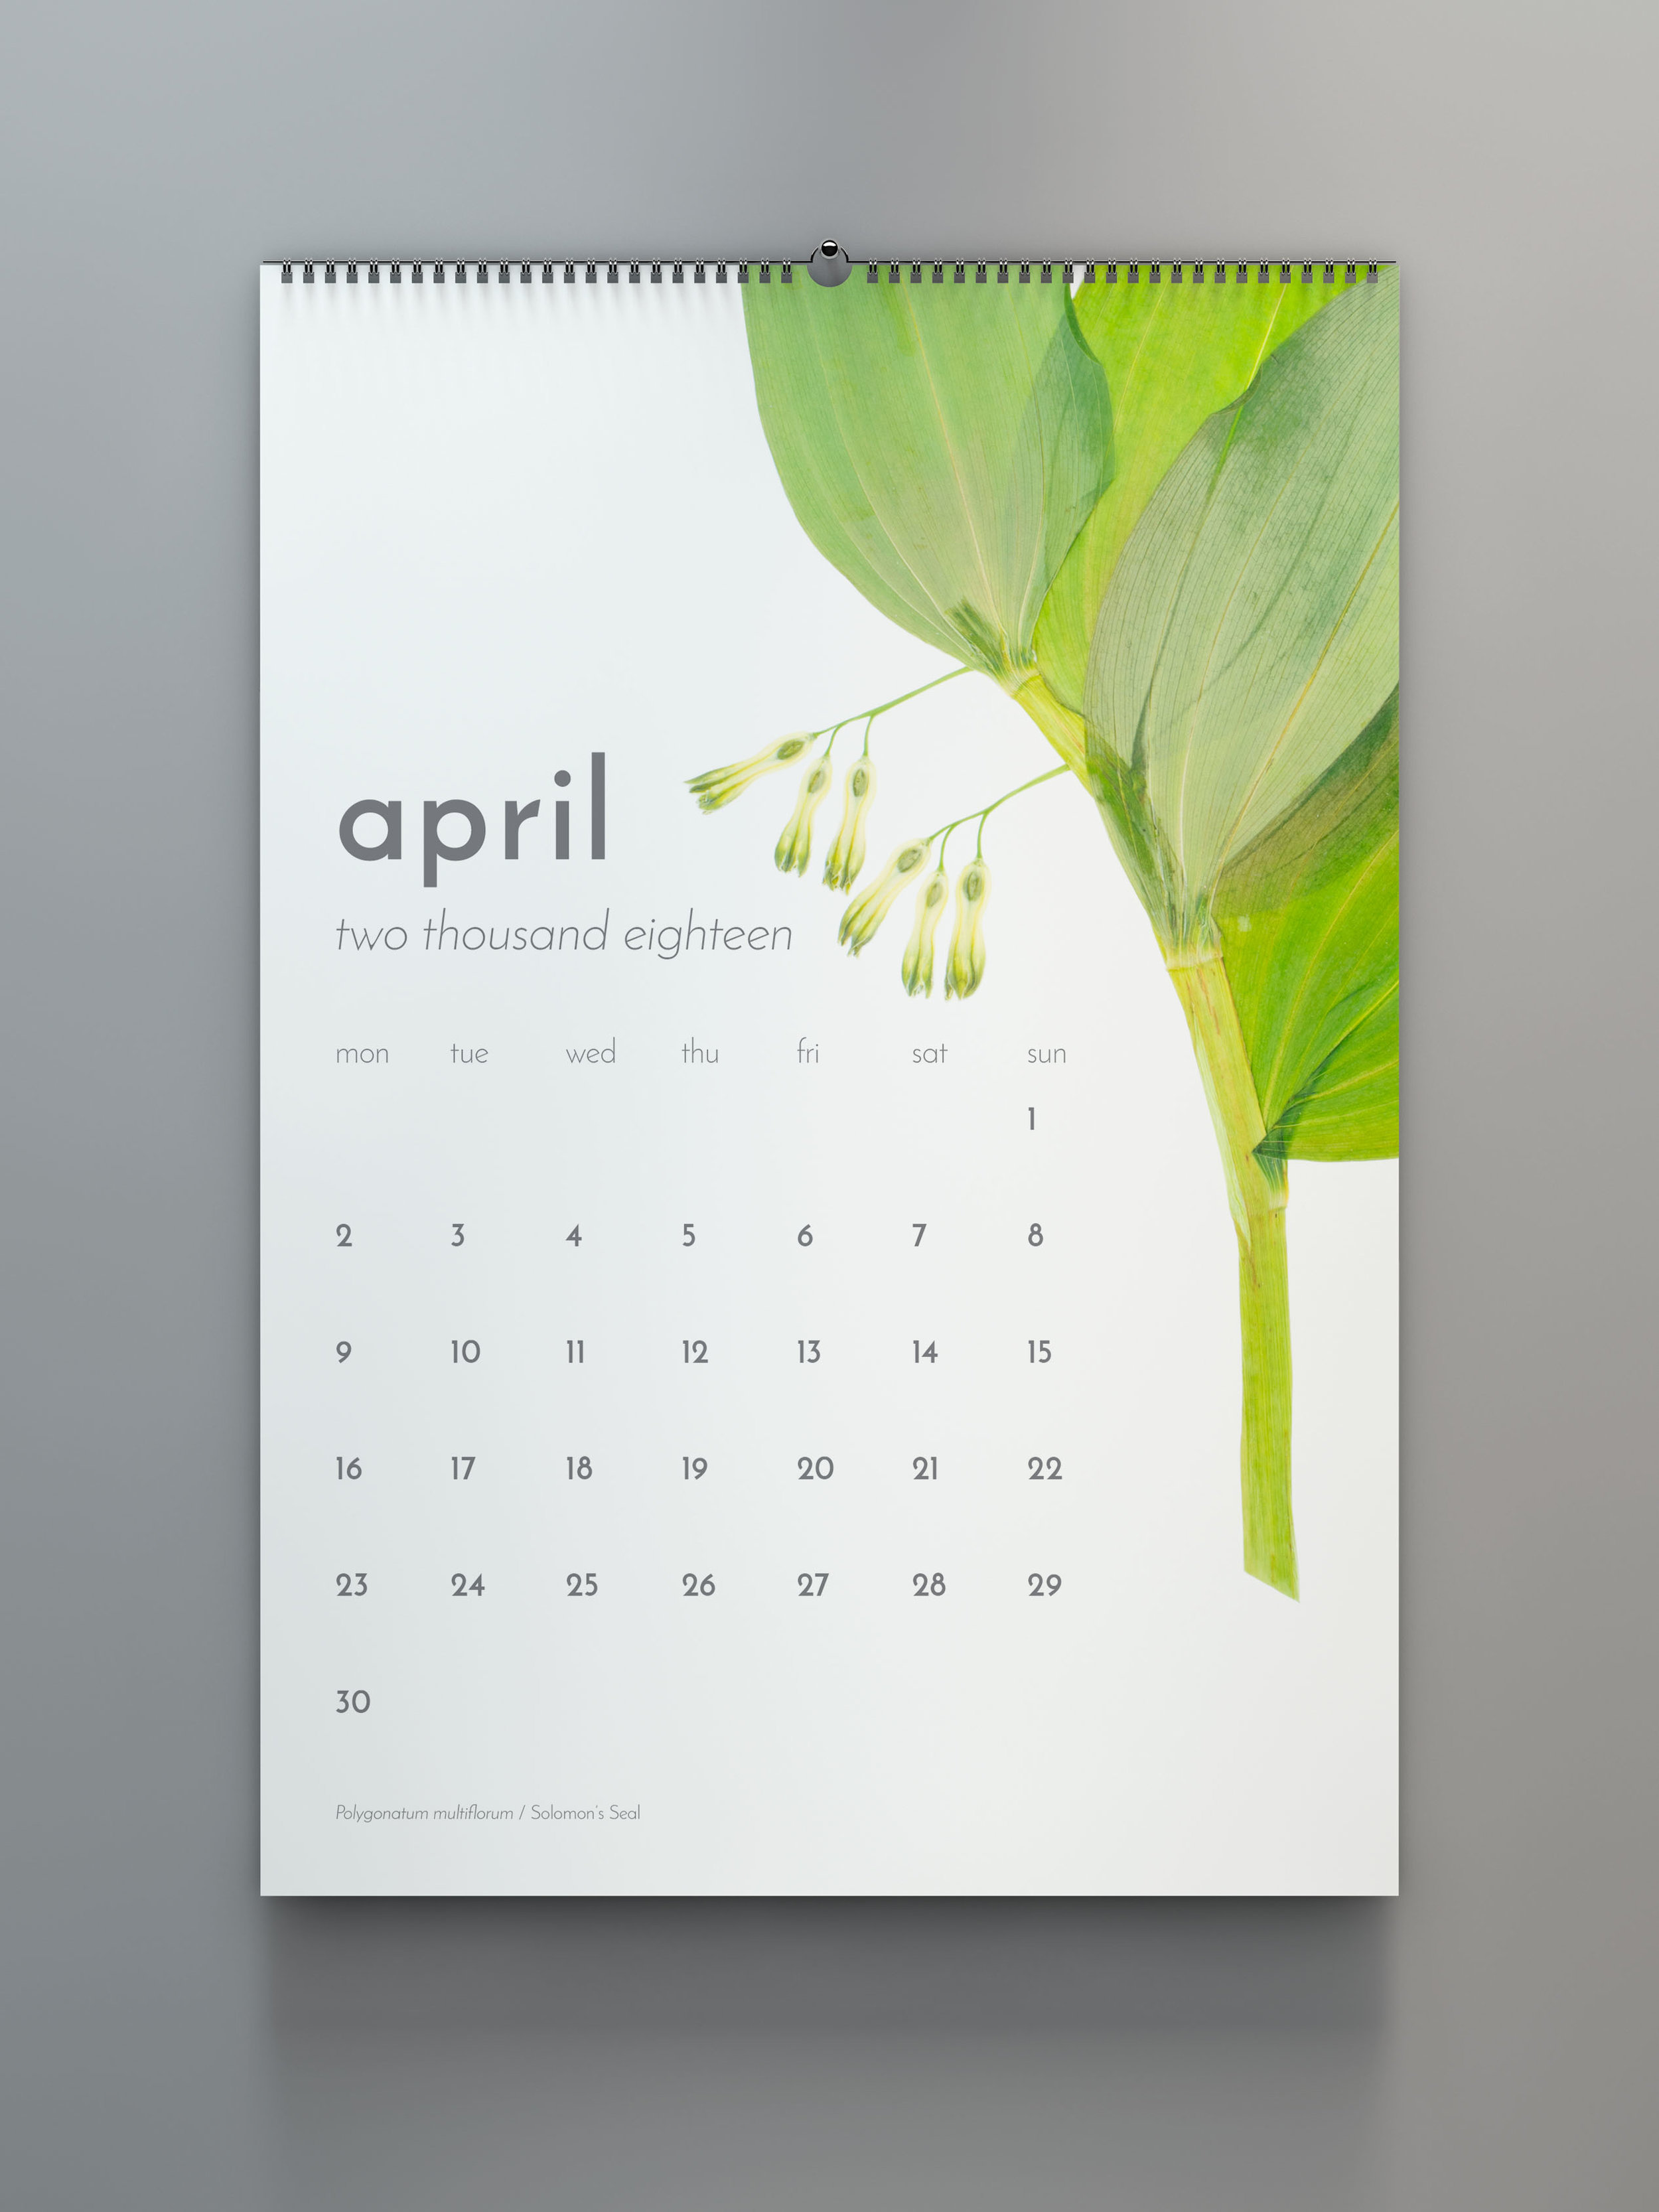 calendars (available again in 2020) - Follow the wildflowers through the changing seasons with informational calendars in English or German that introduce a new plant each month, during its time of prominence in the Swiss landscape.